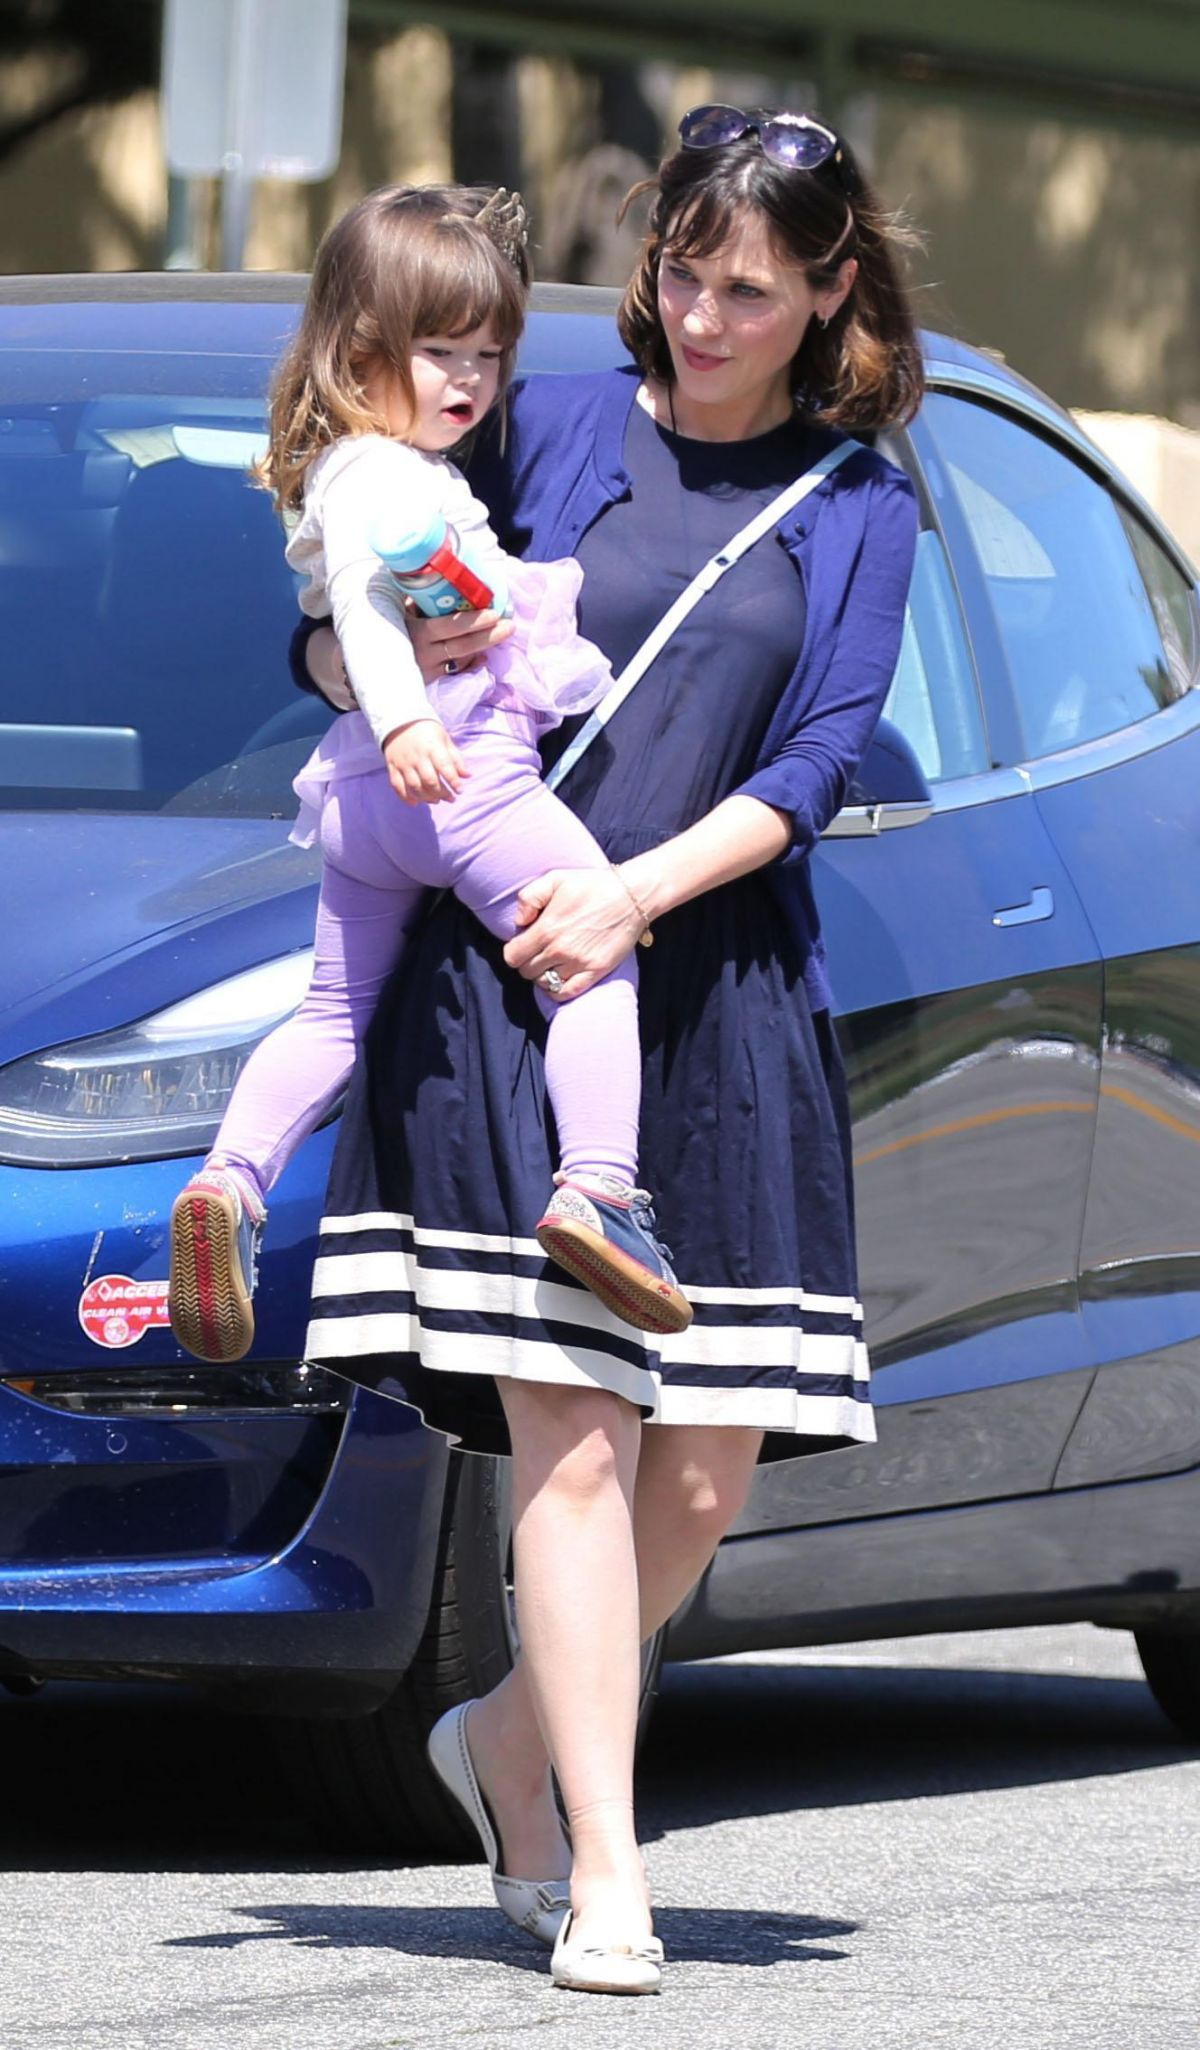 Zooey Deschanel Out For A Day With Her Daughter Elsie In